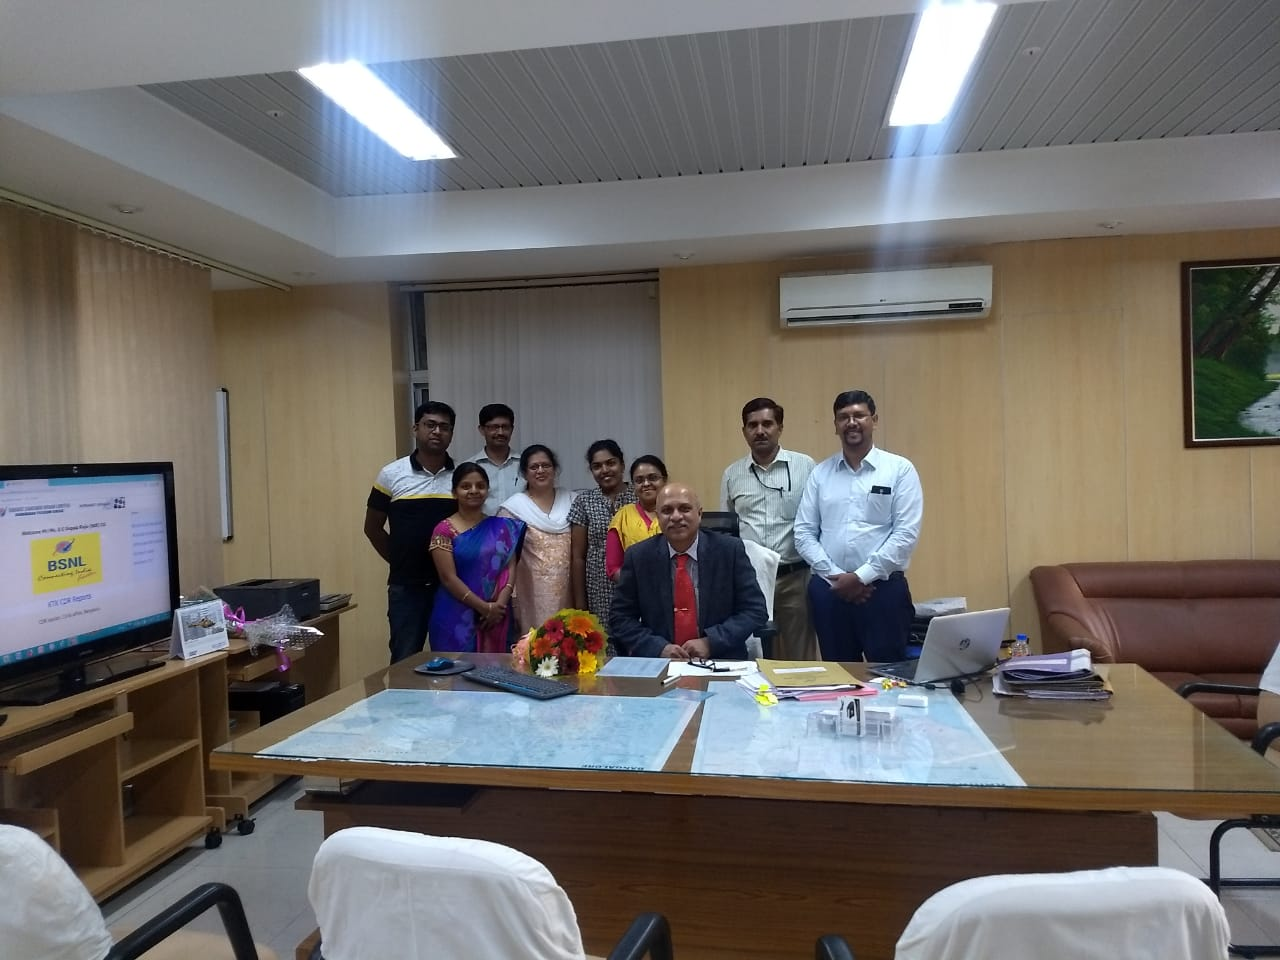 Welcomeing New CGMT S.K.Mishra